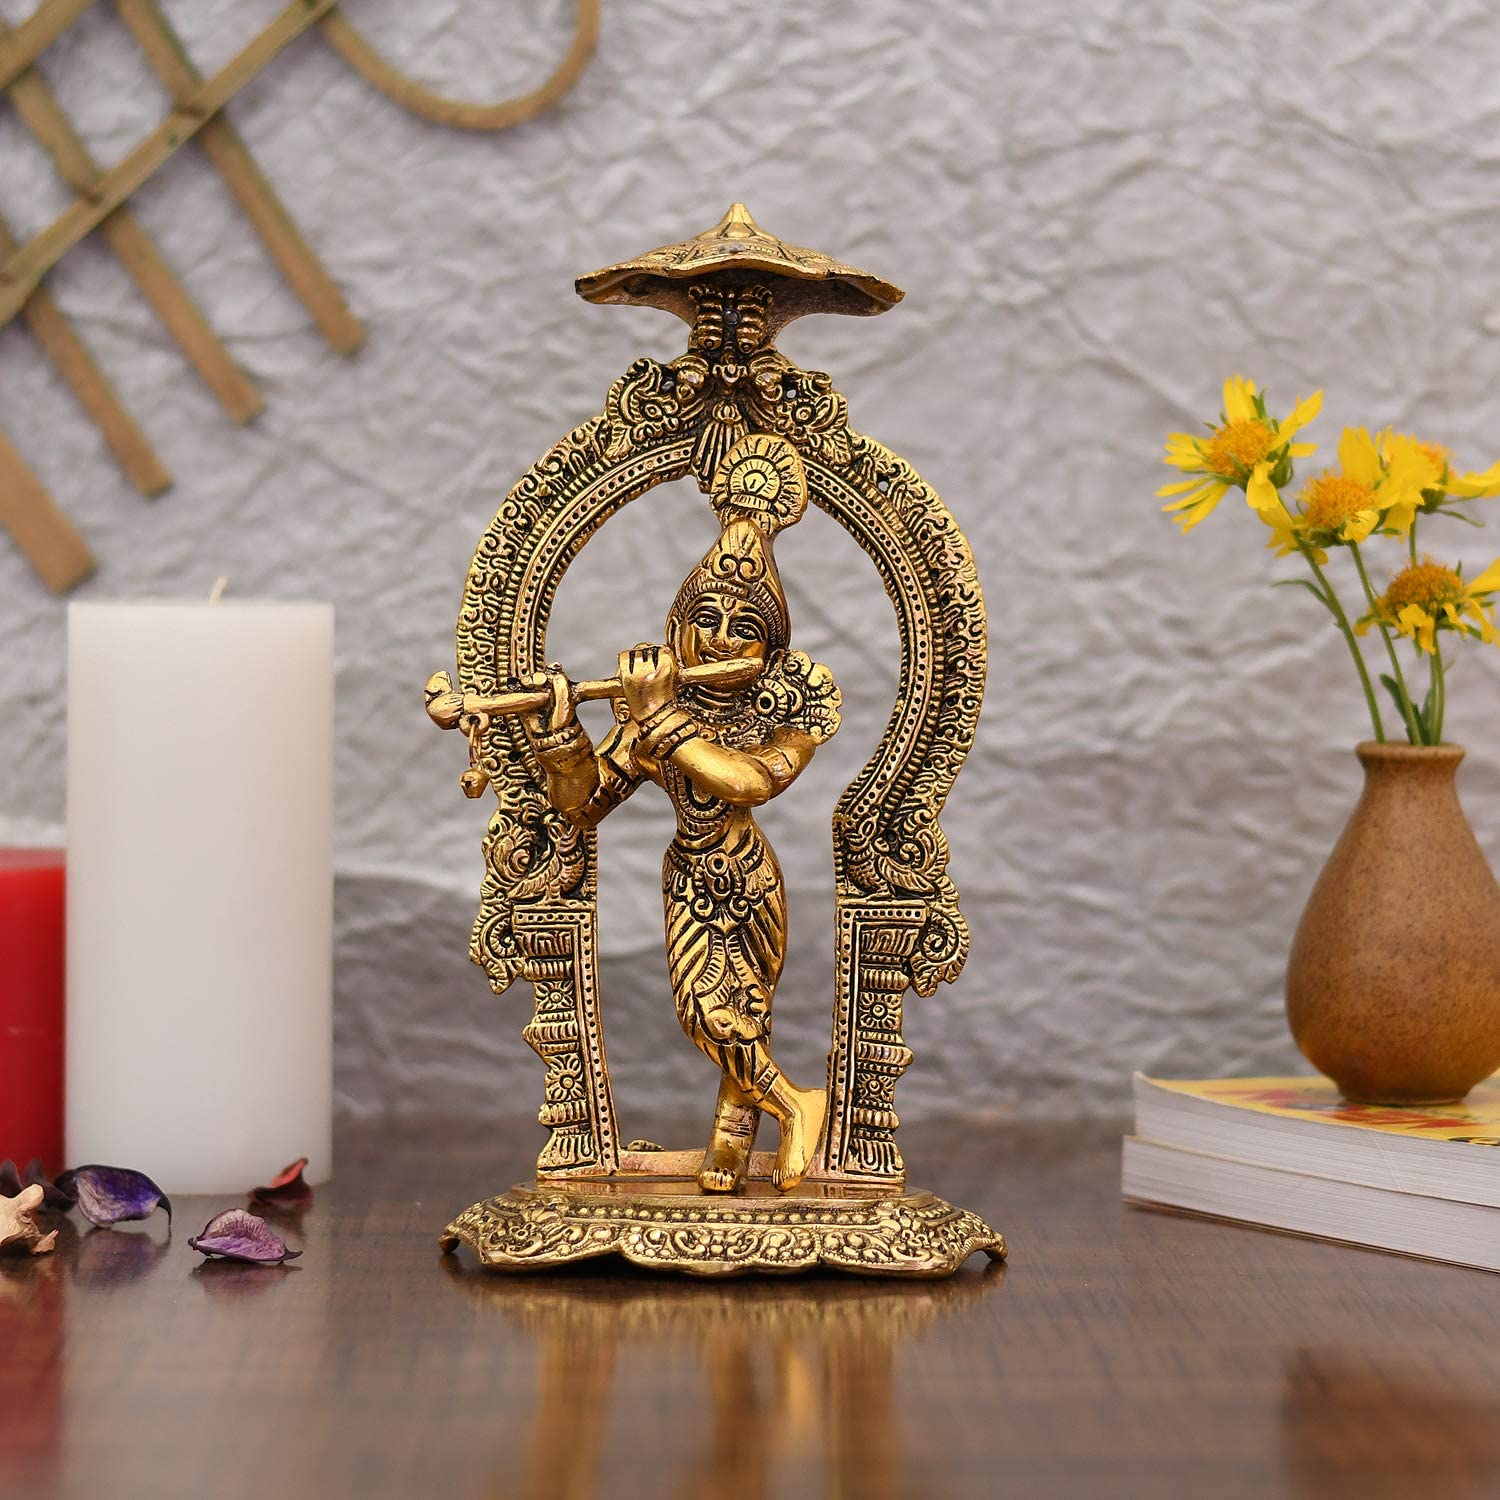 Collectible India Metal Krishna Idols Statue Home Manufacturer OFFicial shop Fashion Deco for Pooja